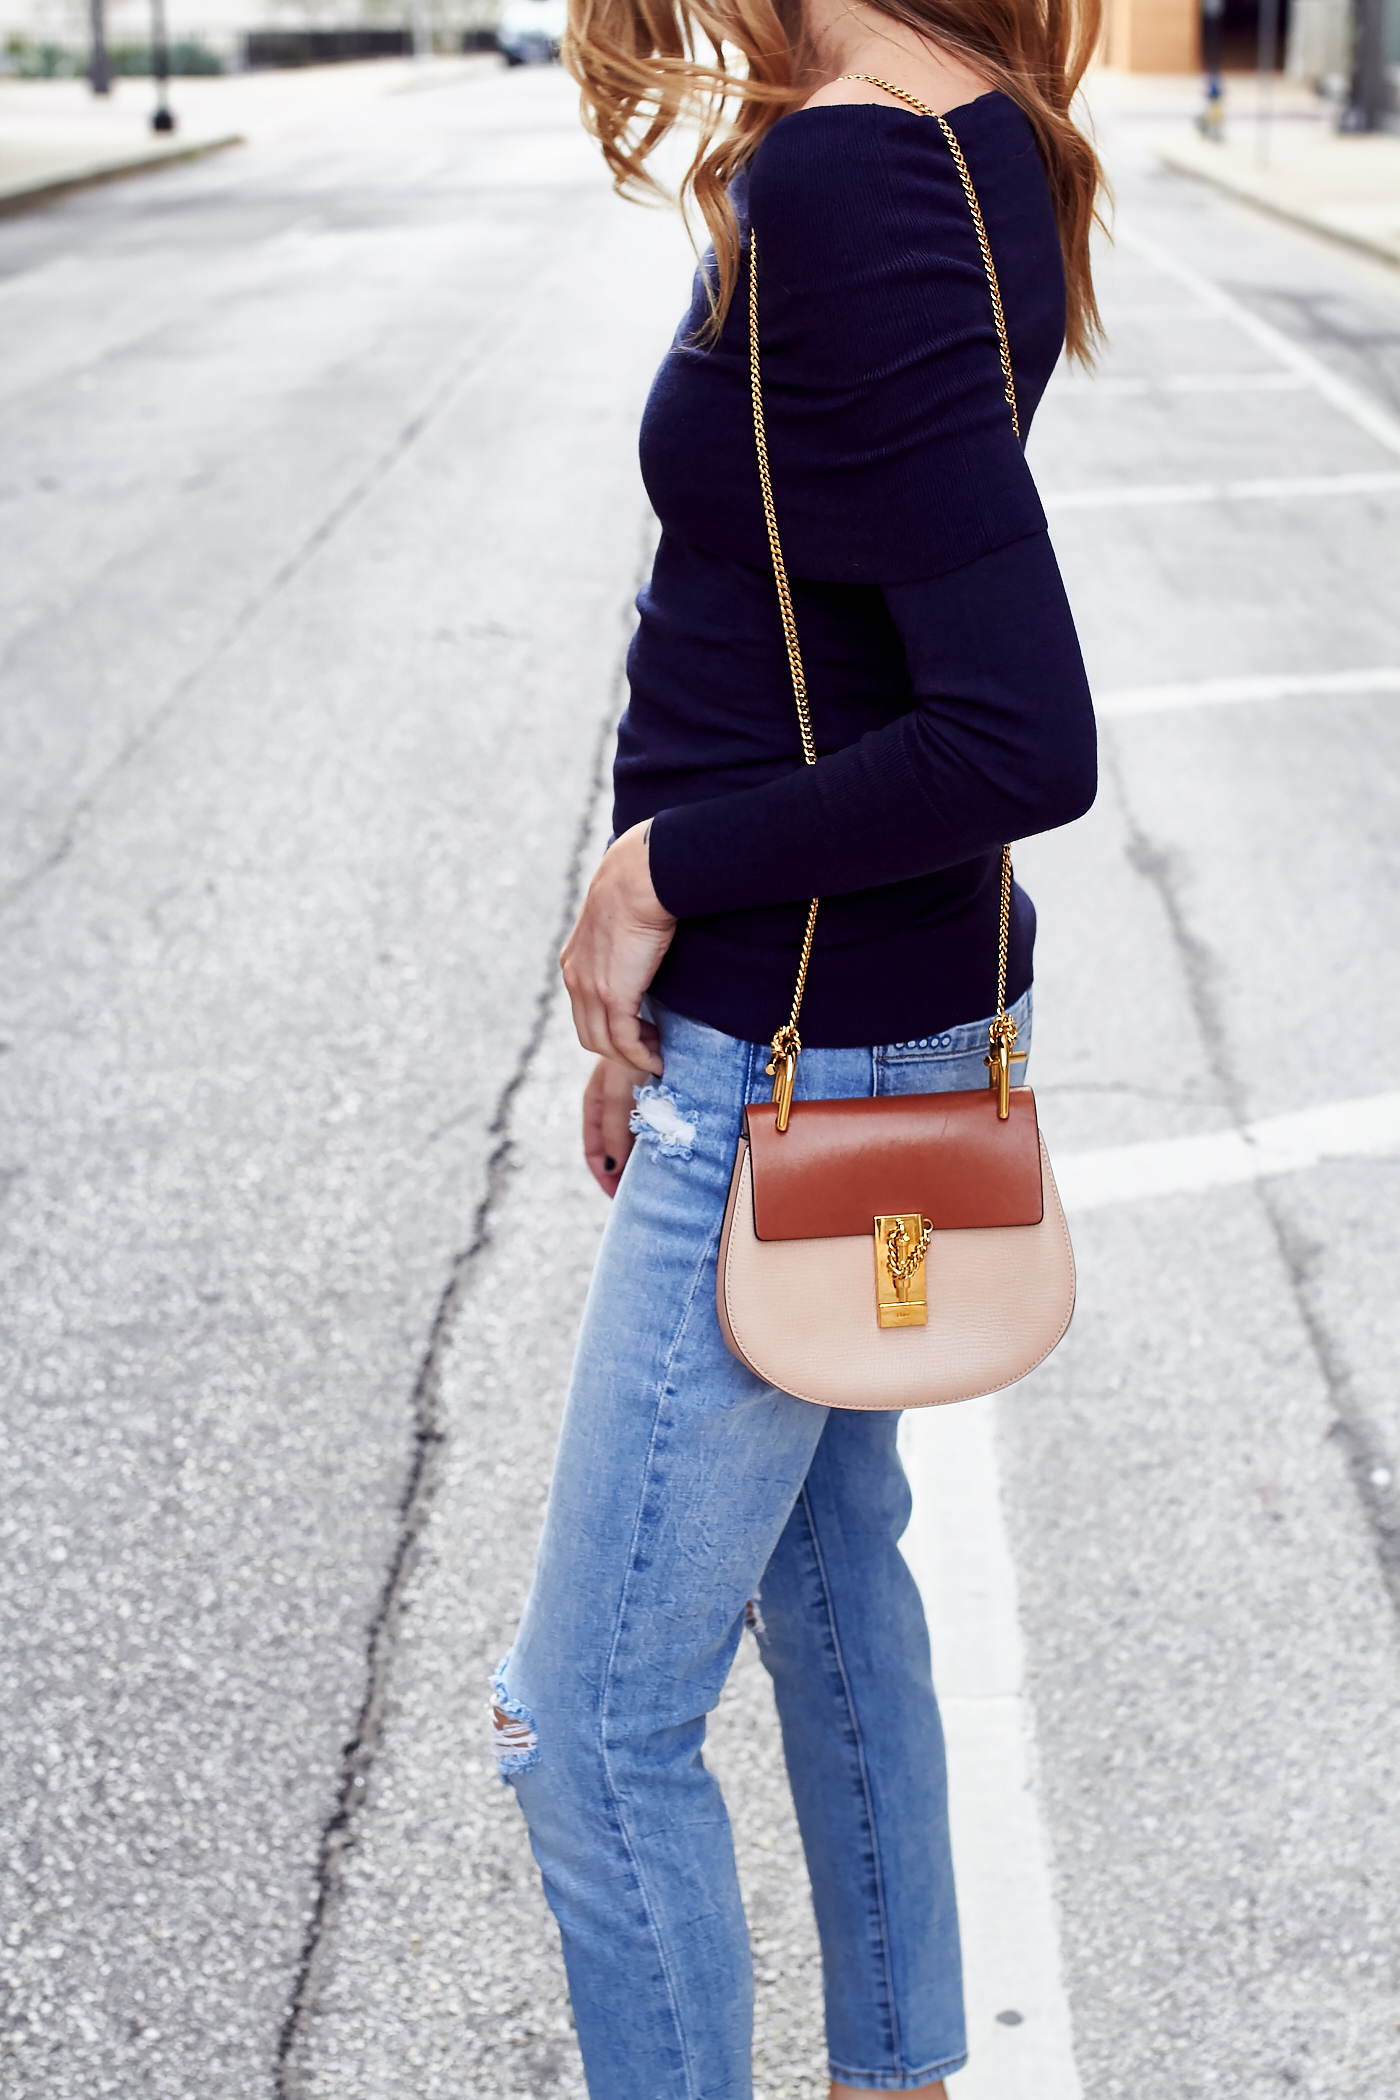 NAVY OFF-THE-SHOULDER SWEATER | Fashion Jackson